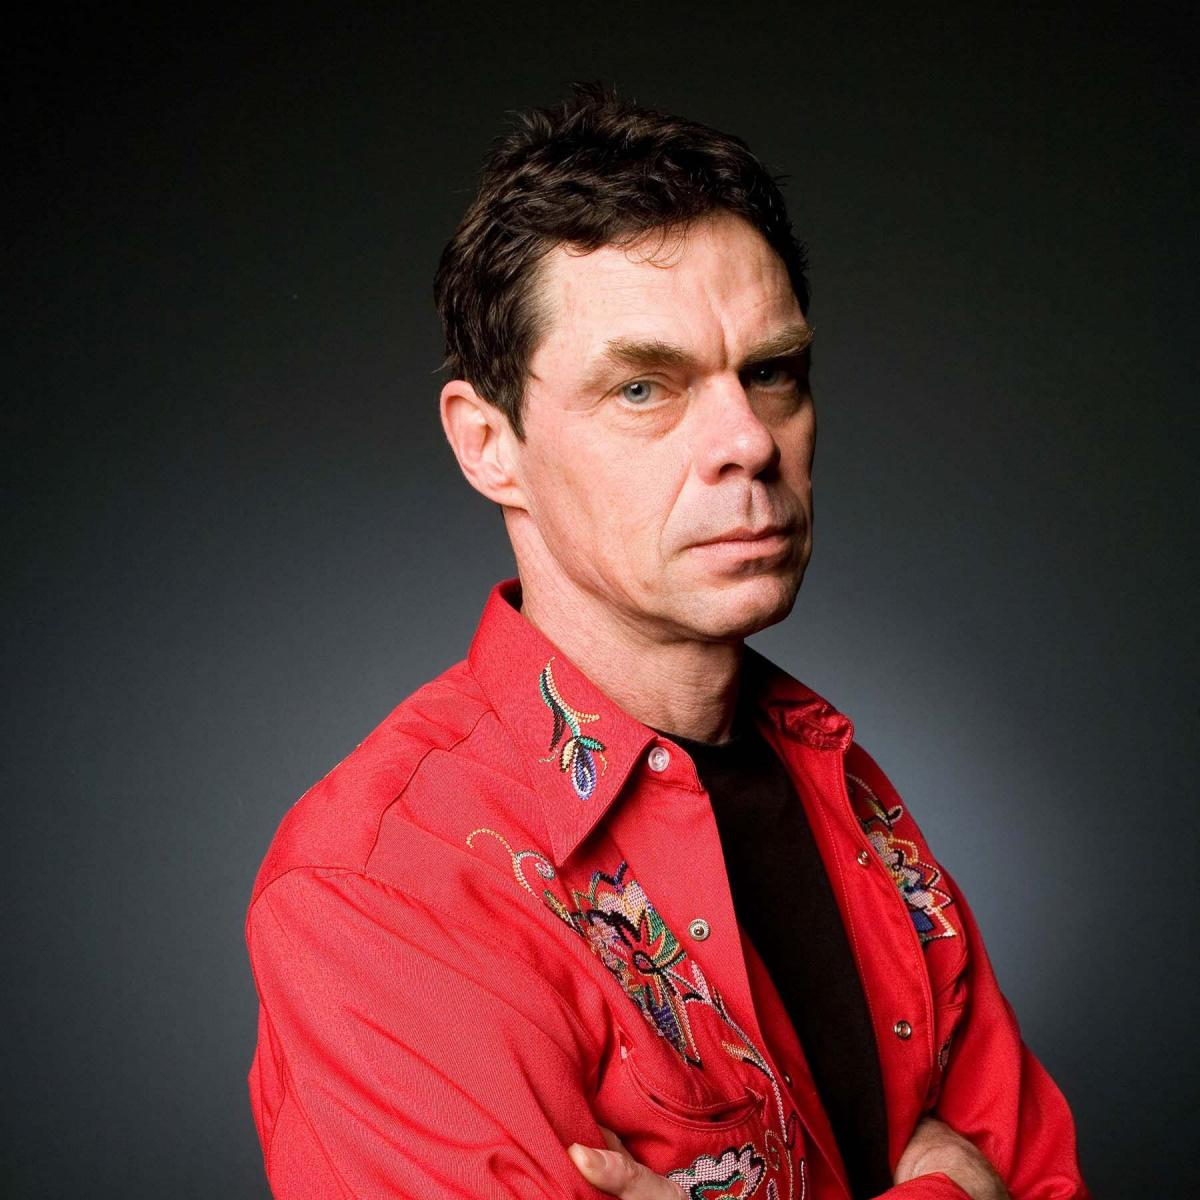 Live at Camberley Theatre with Rich Hall on 26 November 2021